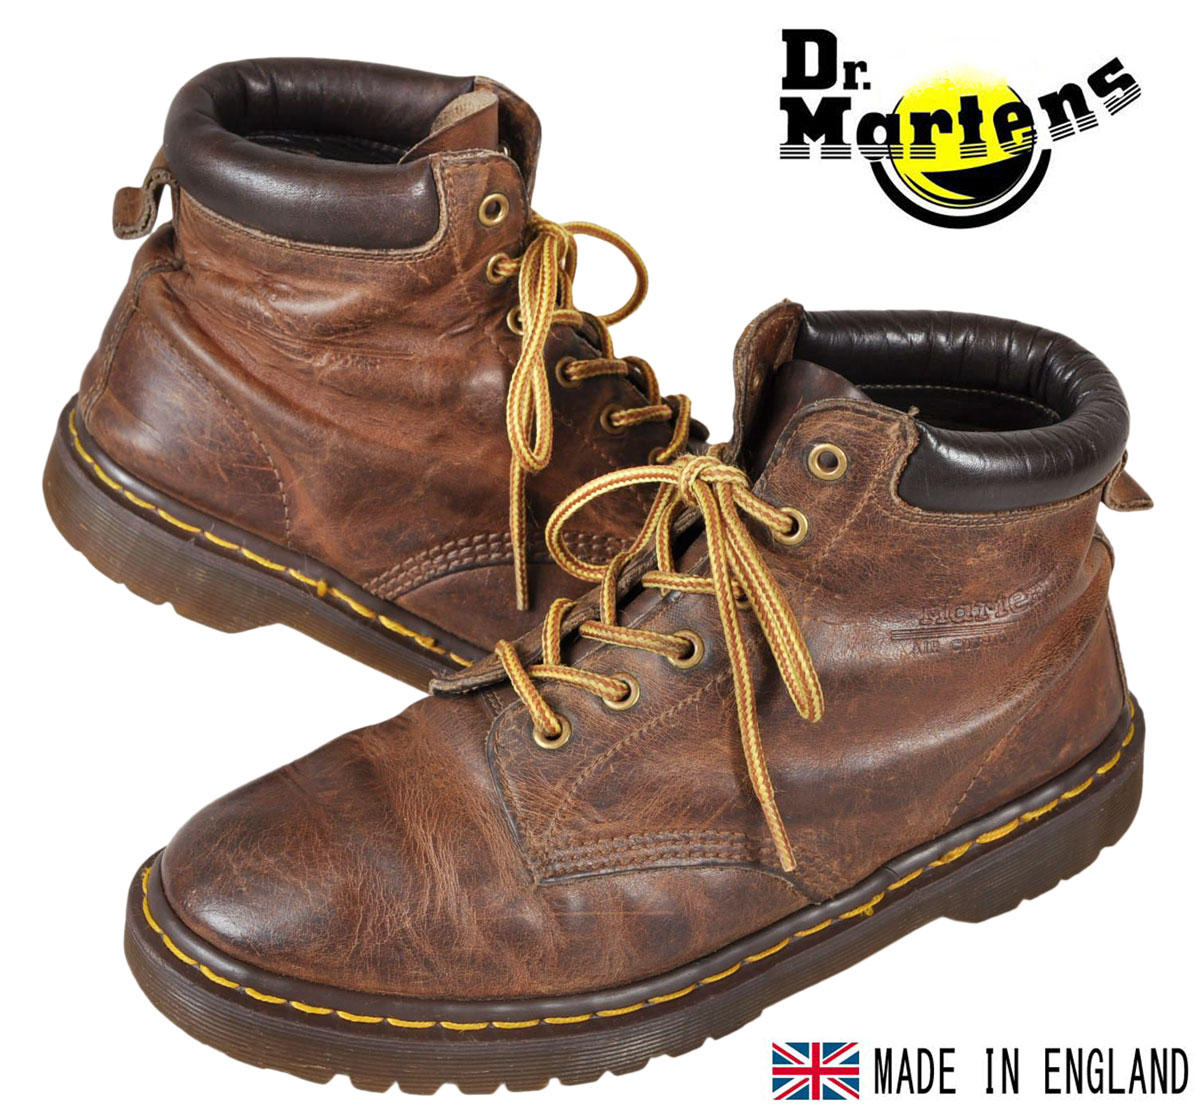 ae7f88ab55348 England made vintage   Dr.martens Martens   6 hole boots   brown leather    JPN28.0cm UK9 ▽